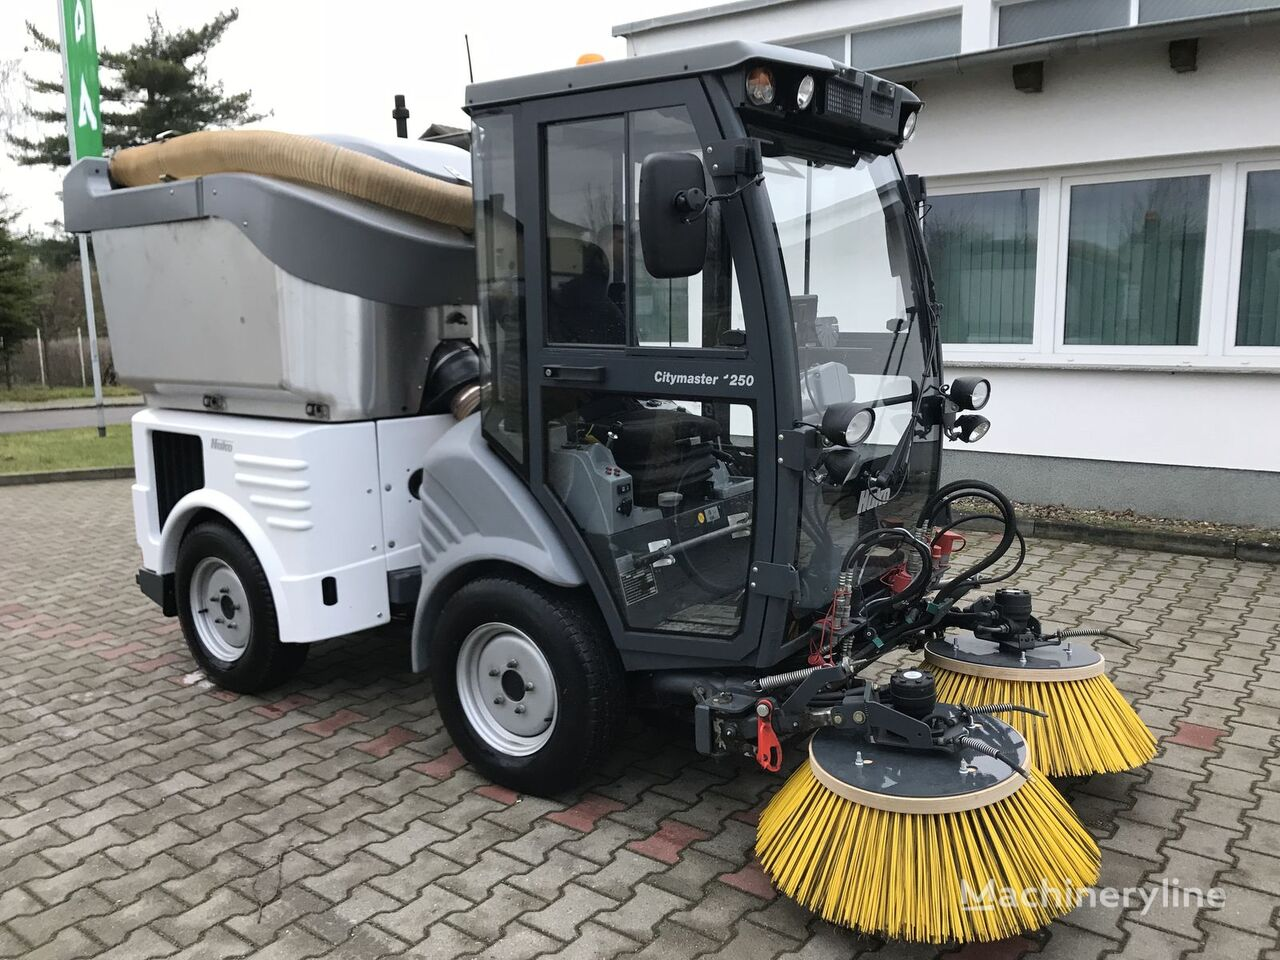 Used Street Sweepers for Sale